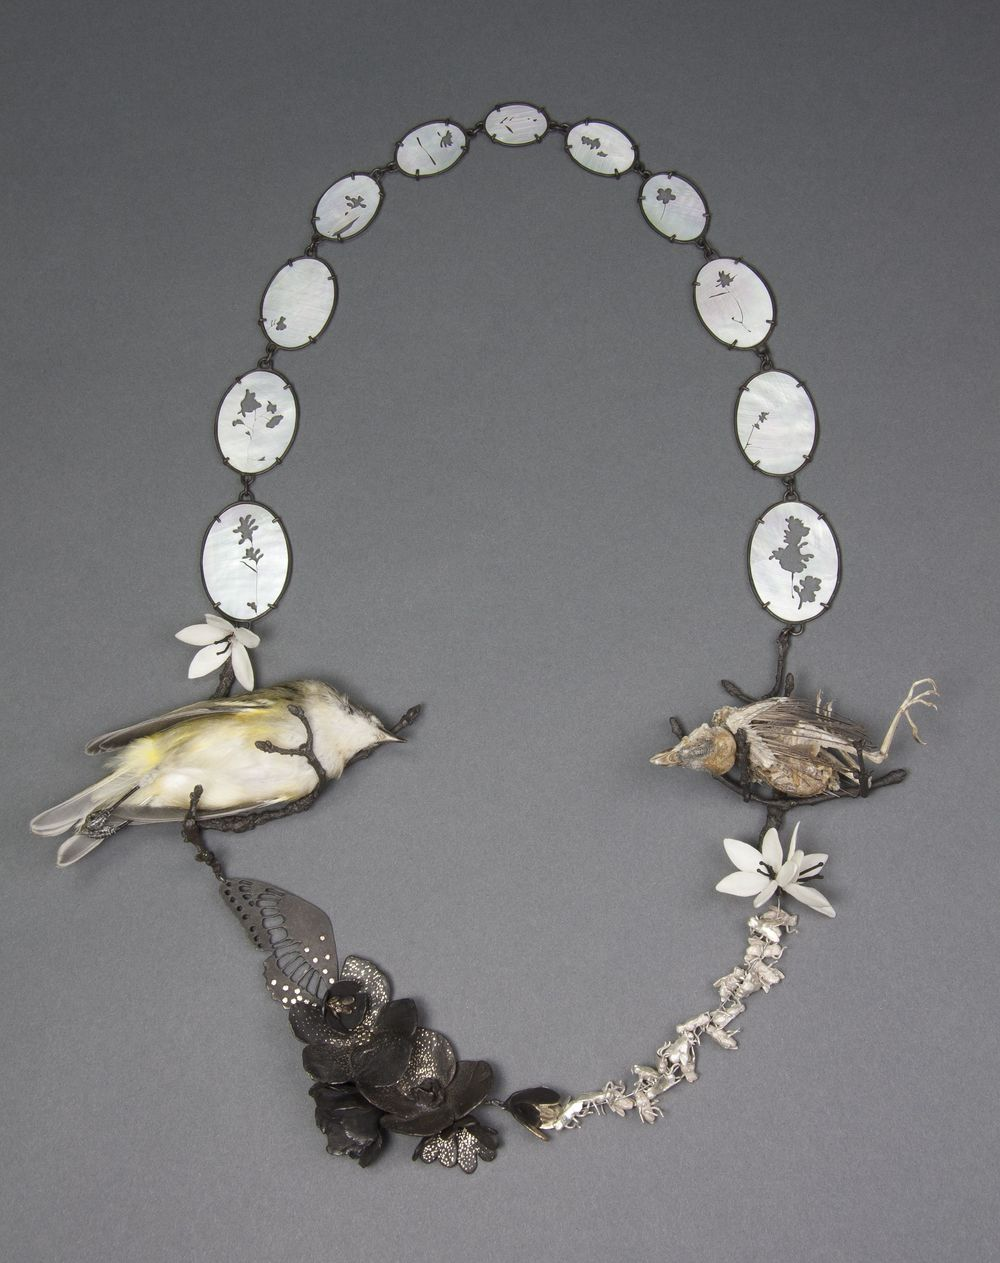 "Two Birds    Kelly Jean Conroy, 2013  20"" x 8"" x 1.5""  Sterling silver, bronze, copper, bone, mother-of-pearl, cubic zirconia, preserves vireo, sparrow skeleton"